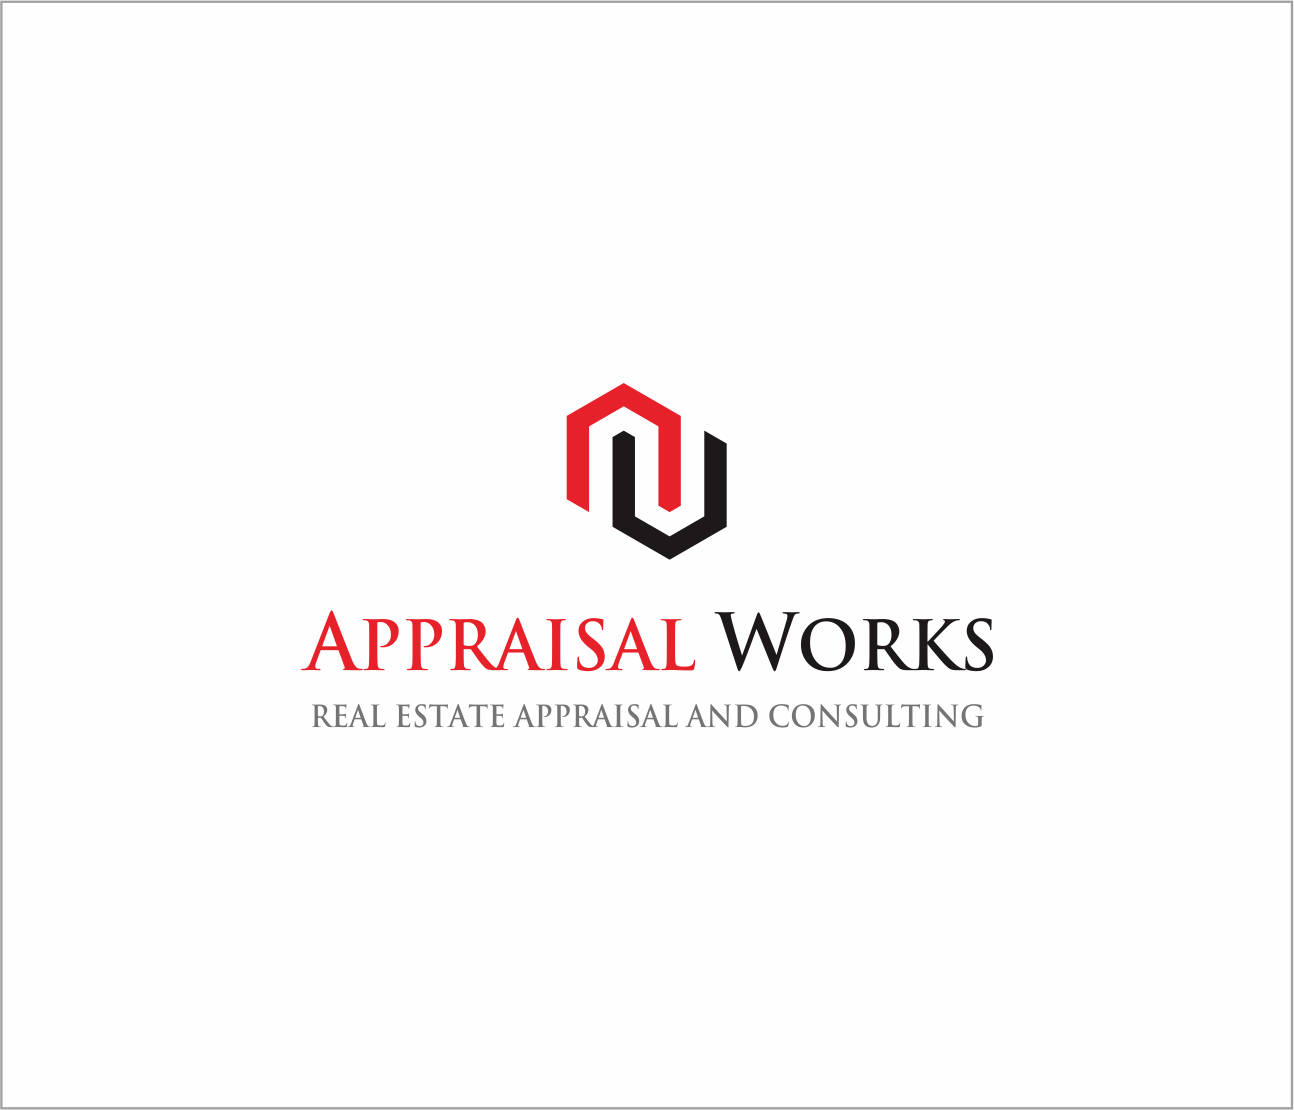 Logo Design by Armada Jamaluddin - Entry No. 237 in the Logo Design Contest Appraisal Works Logo Design.